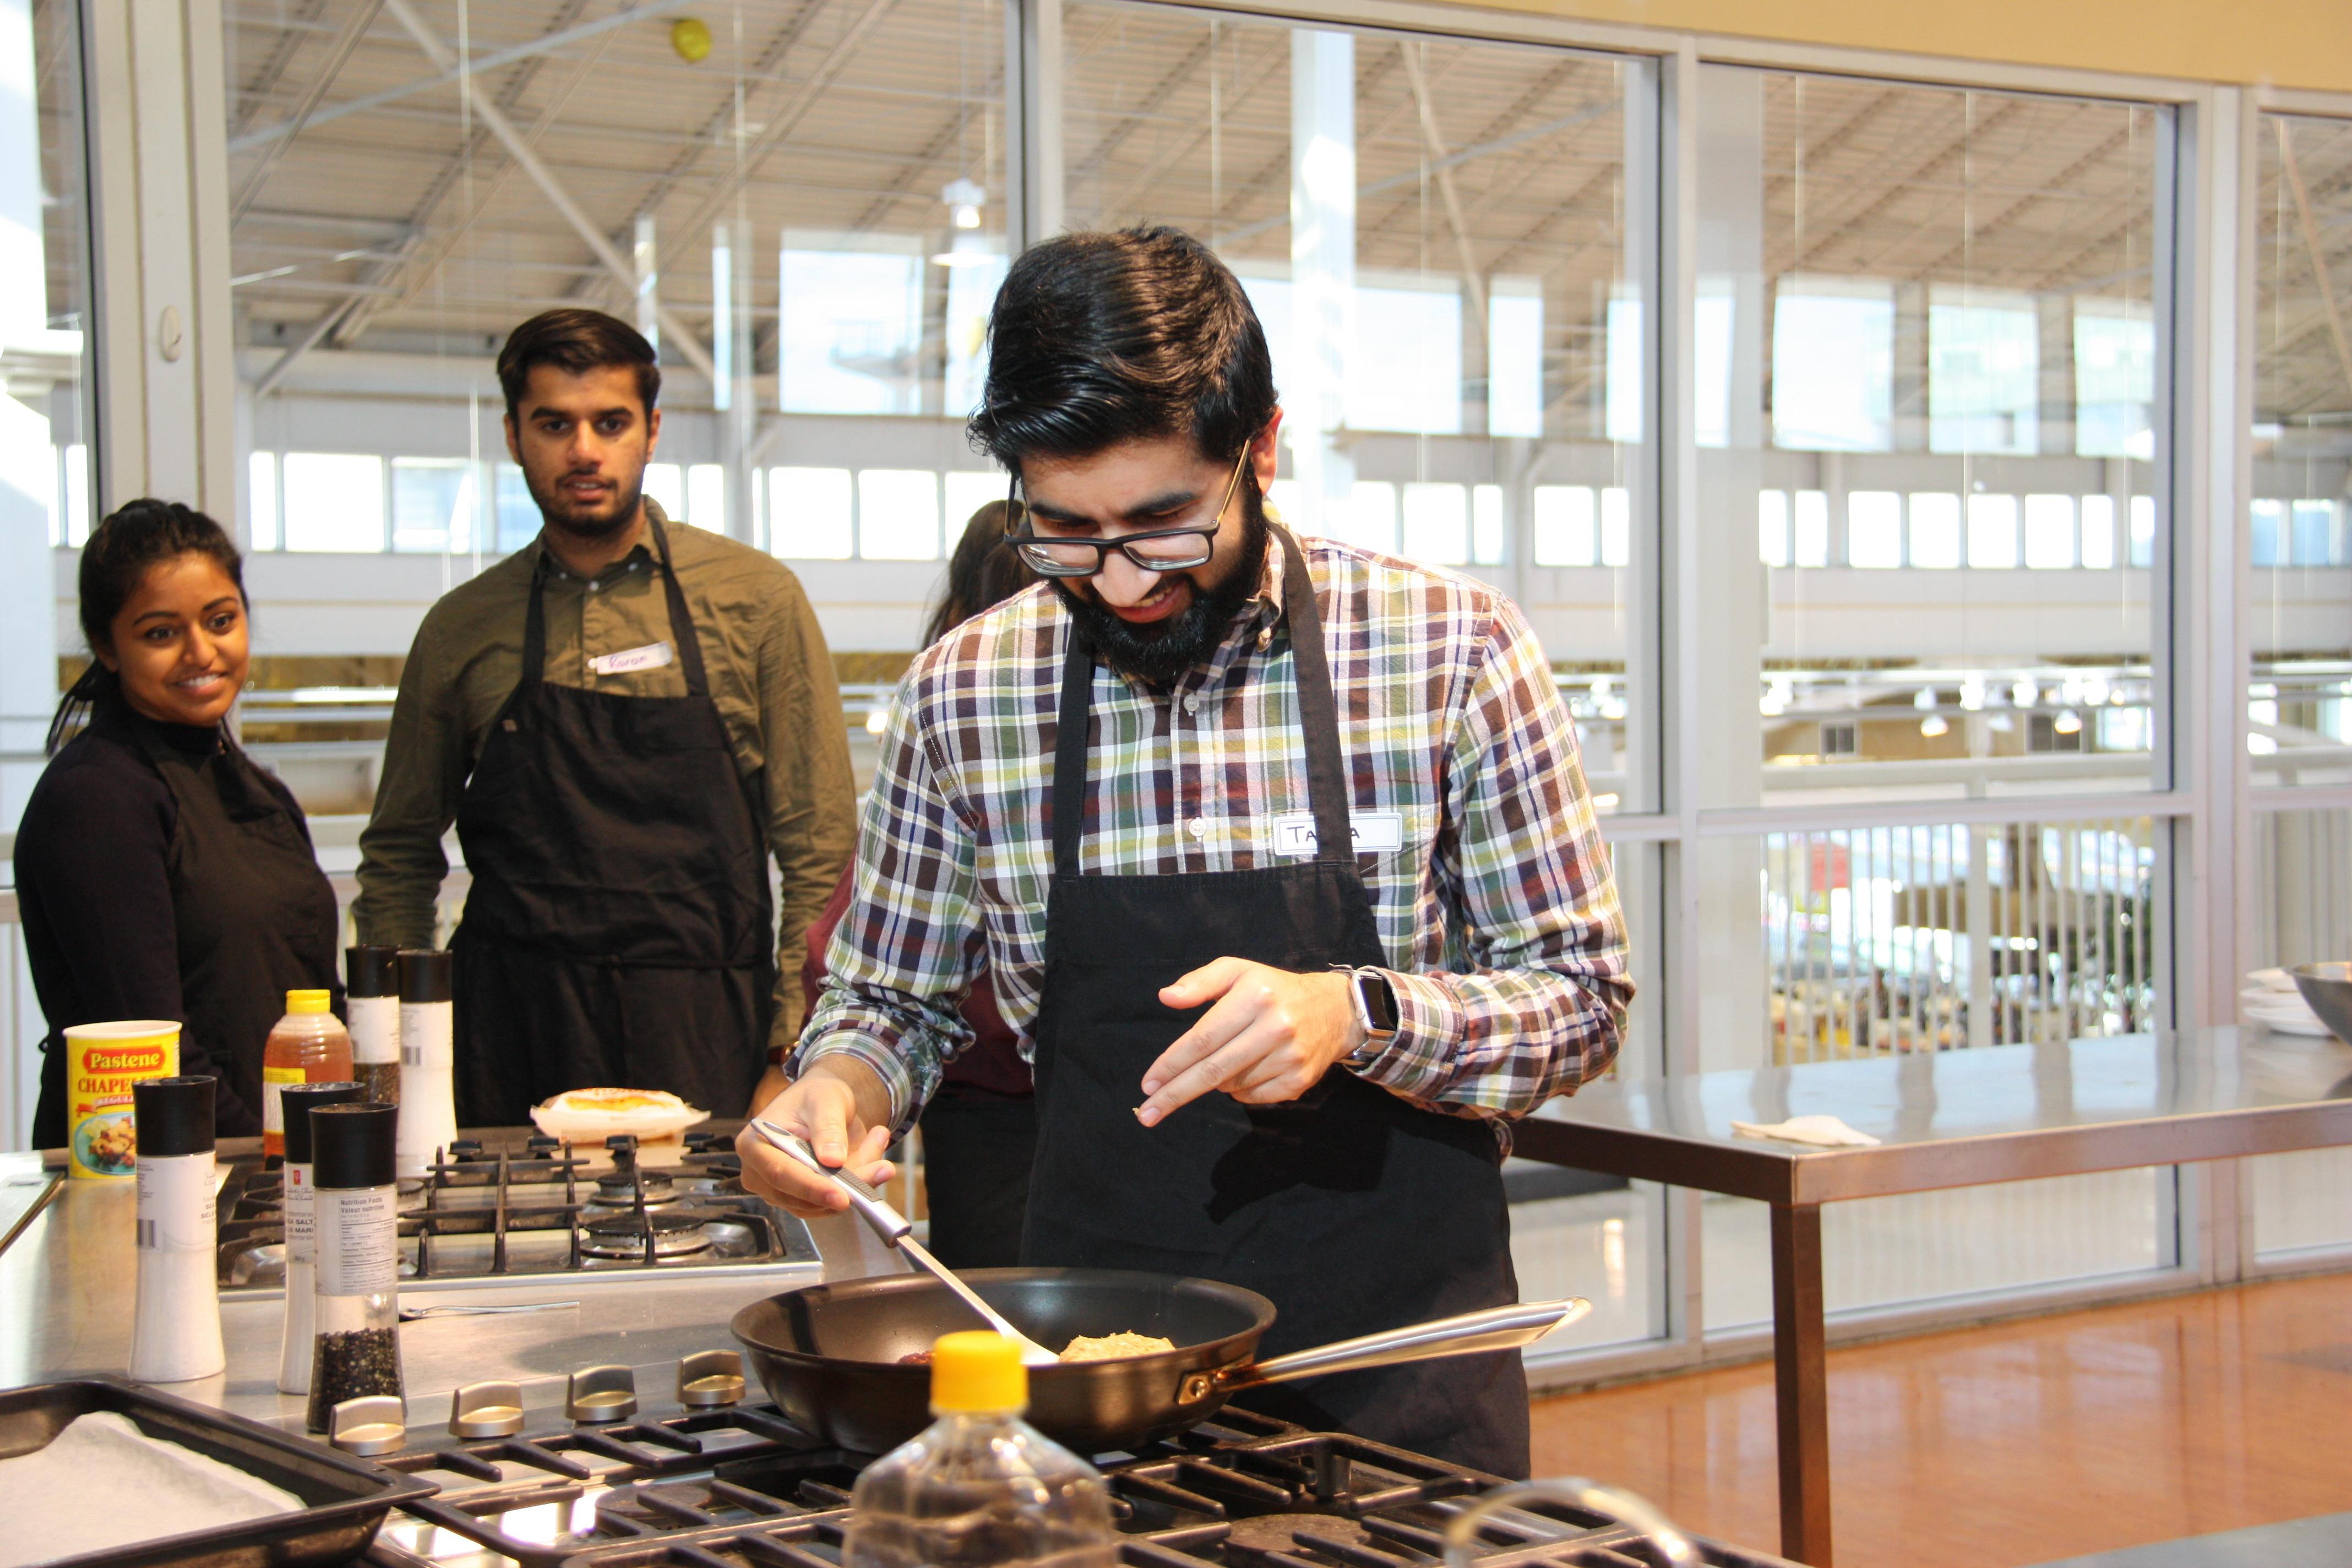 MEDICAL STUDENT TAAHA MUHAMMAD TRIES HIS HAND AT COOKING